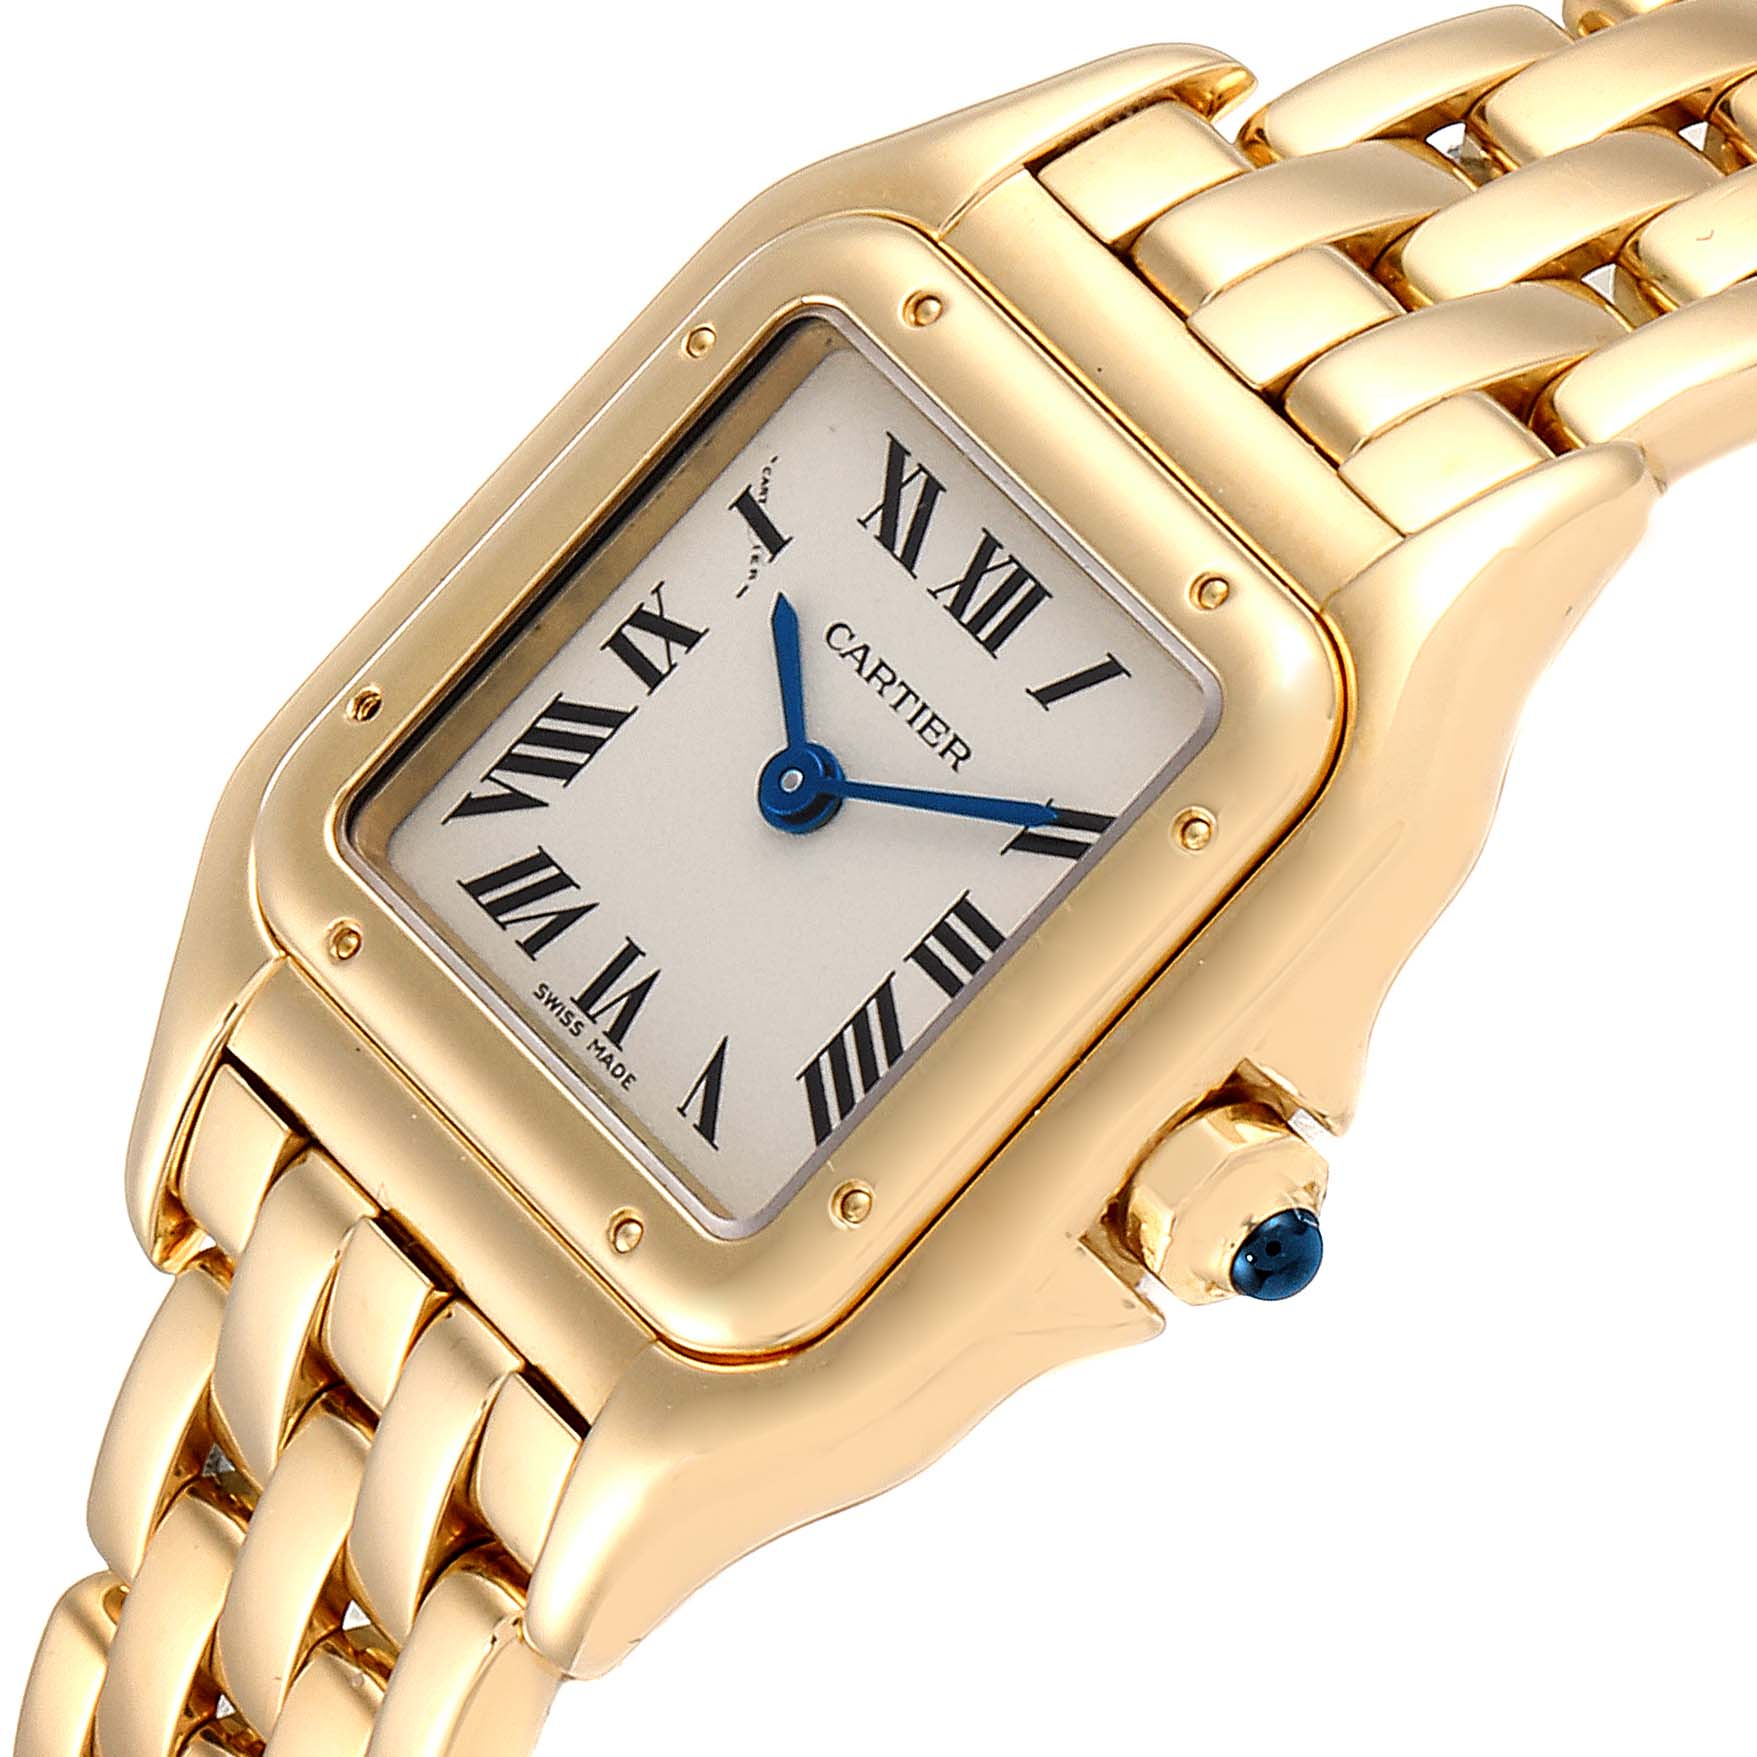 Cartier Panthere Small Yellow Gold Silver Dial Ladies Watch W25022B9 Box SwissWatchExpo